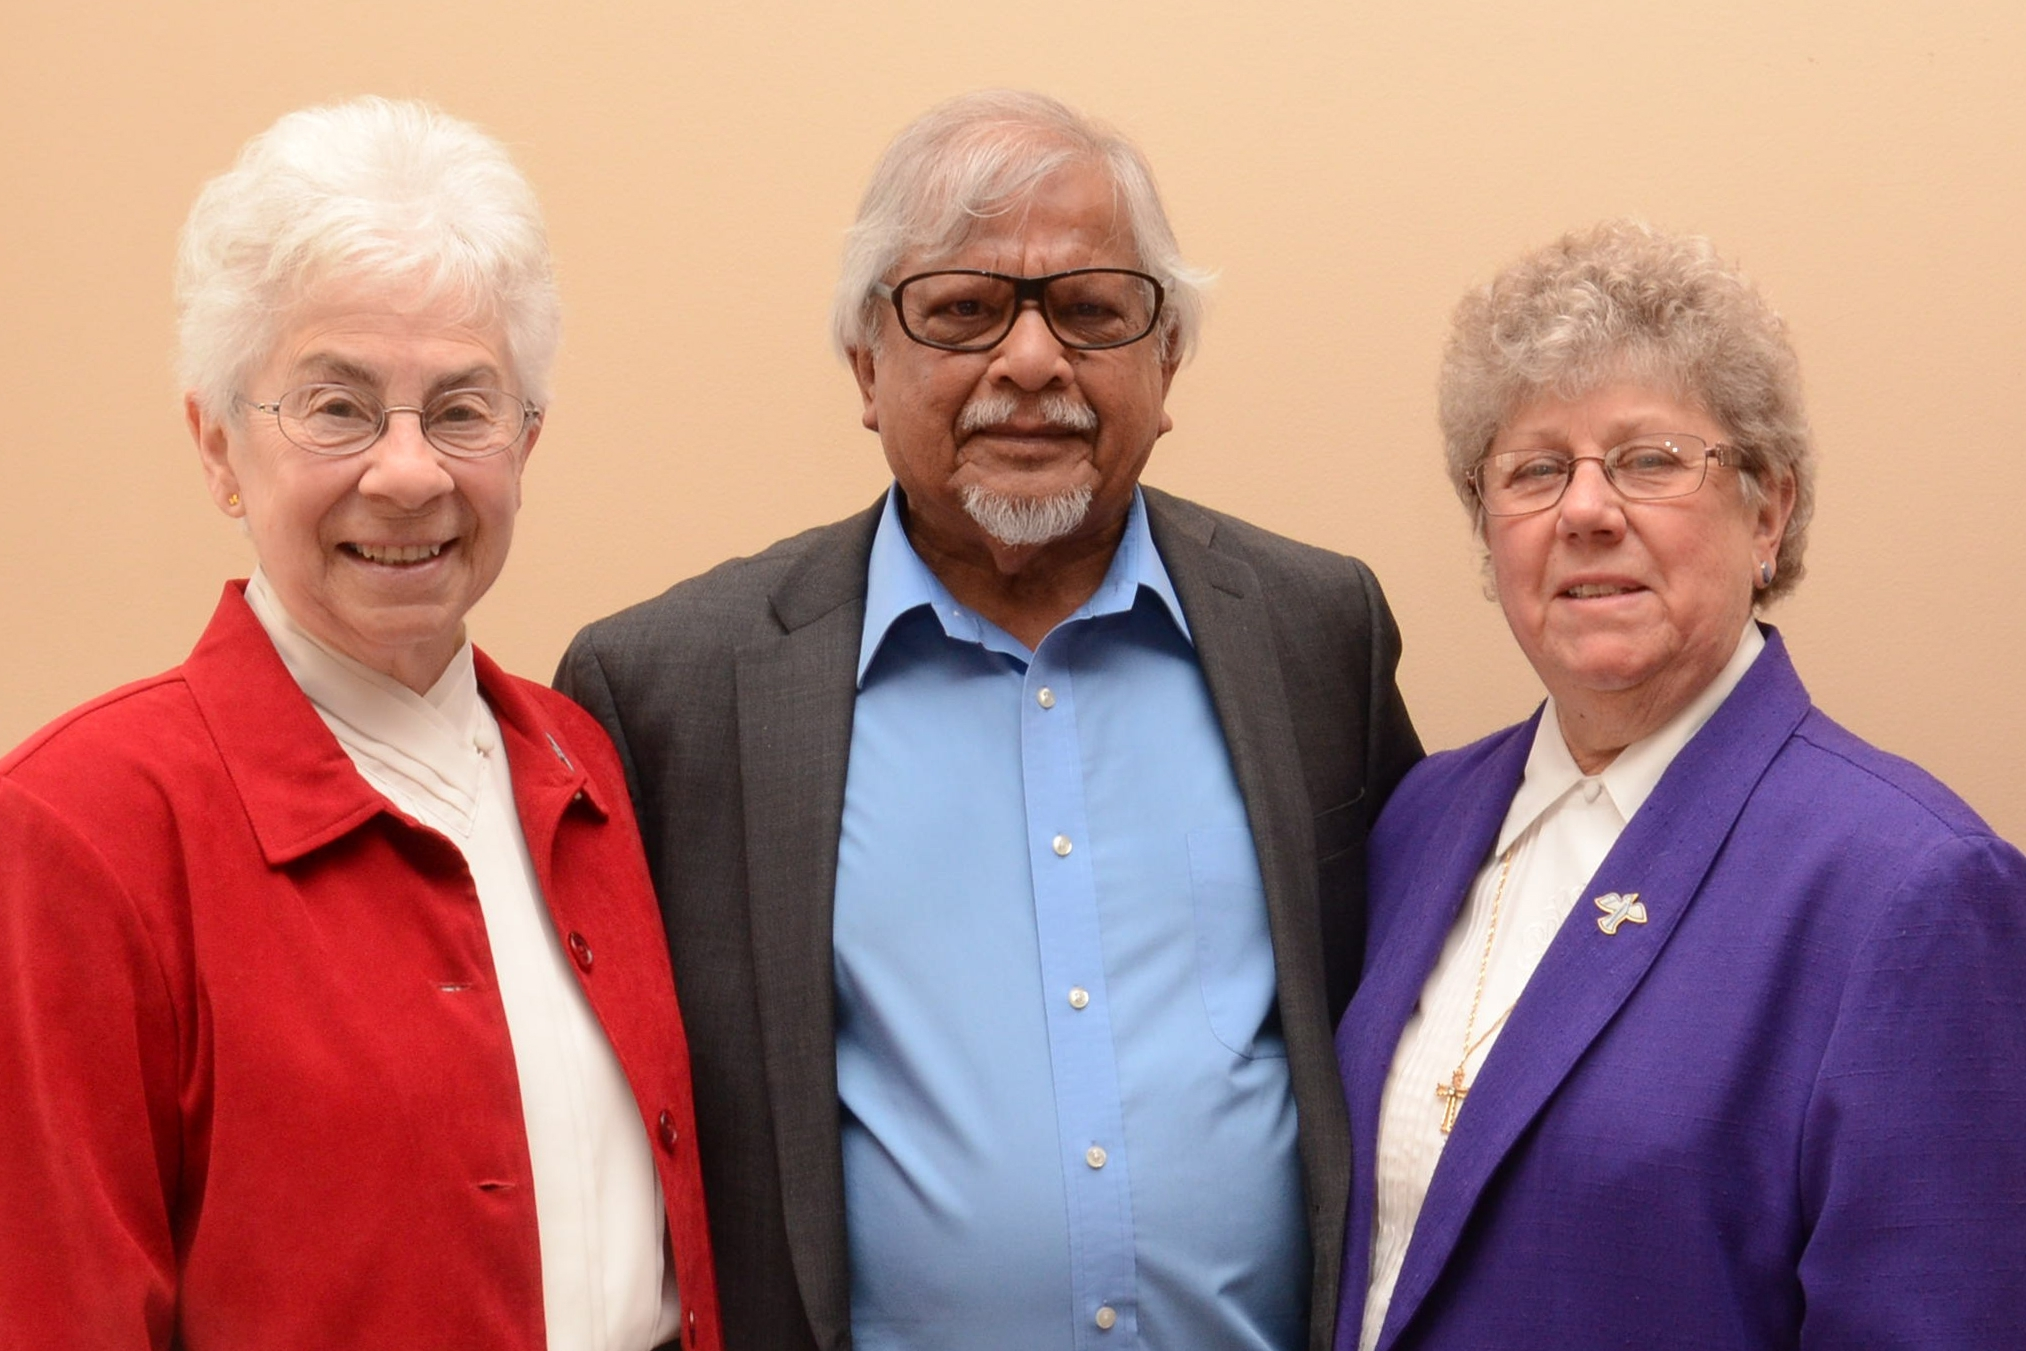 Sisters Mary Jo Colucci, SSJ and Michele Beiter, SSJ with Arun Gandhi